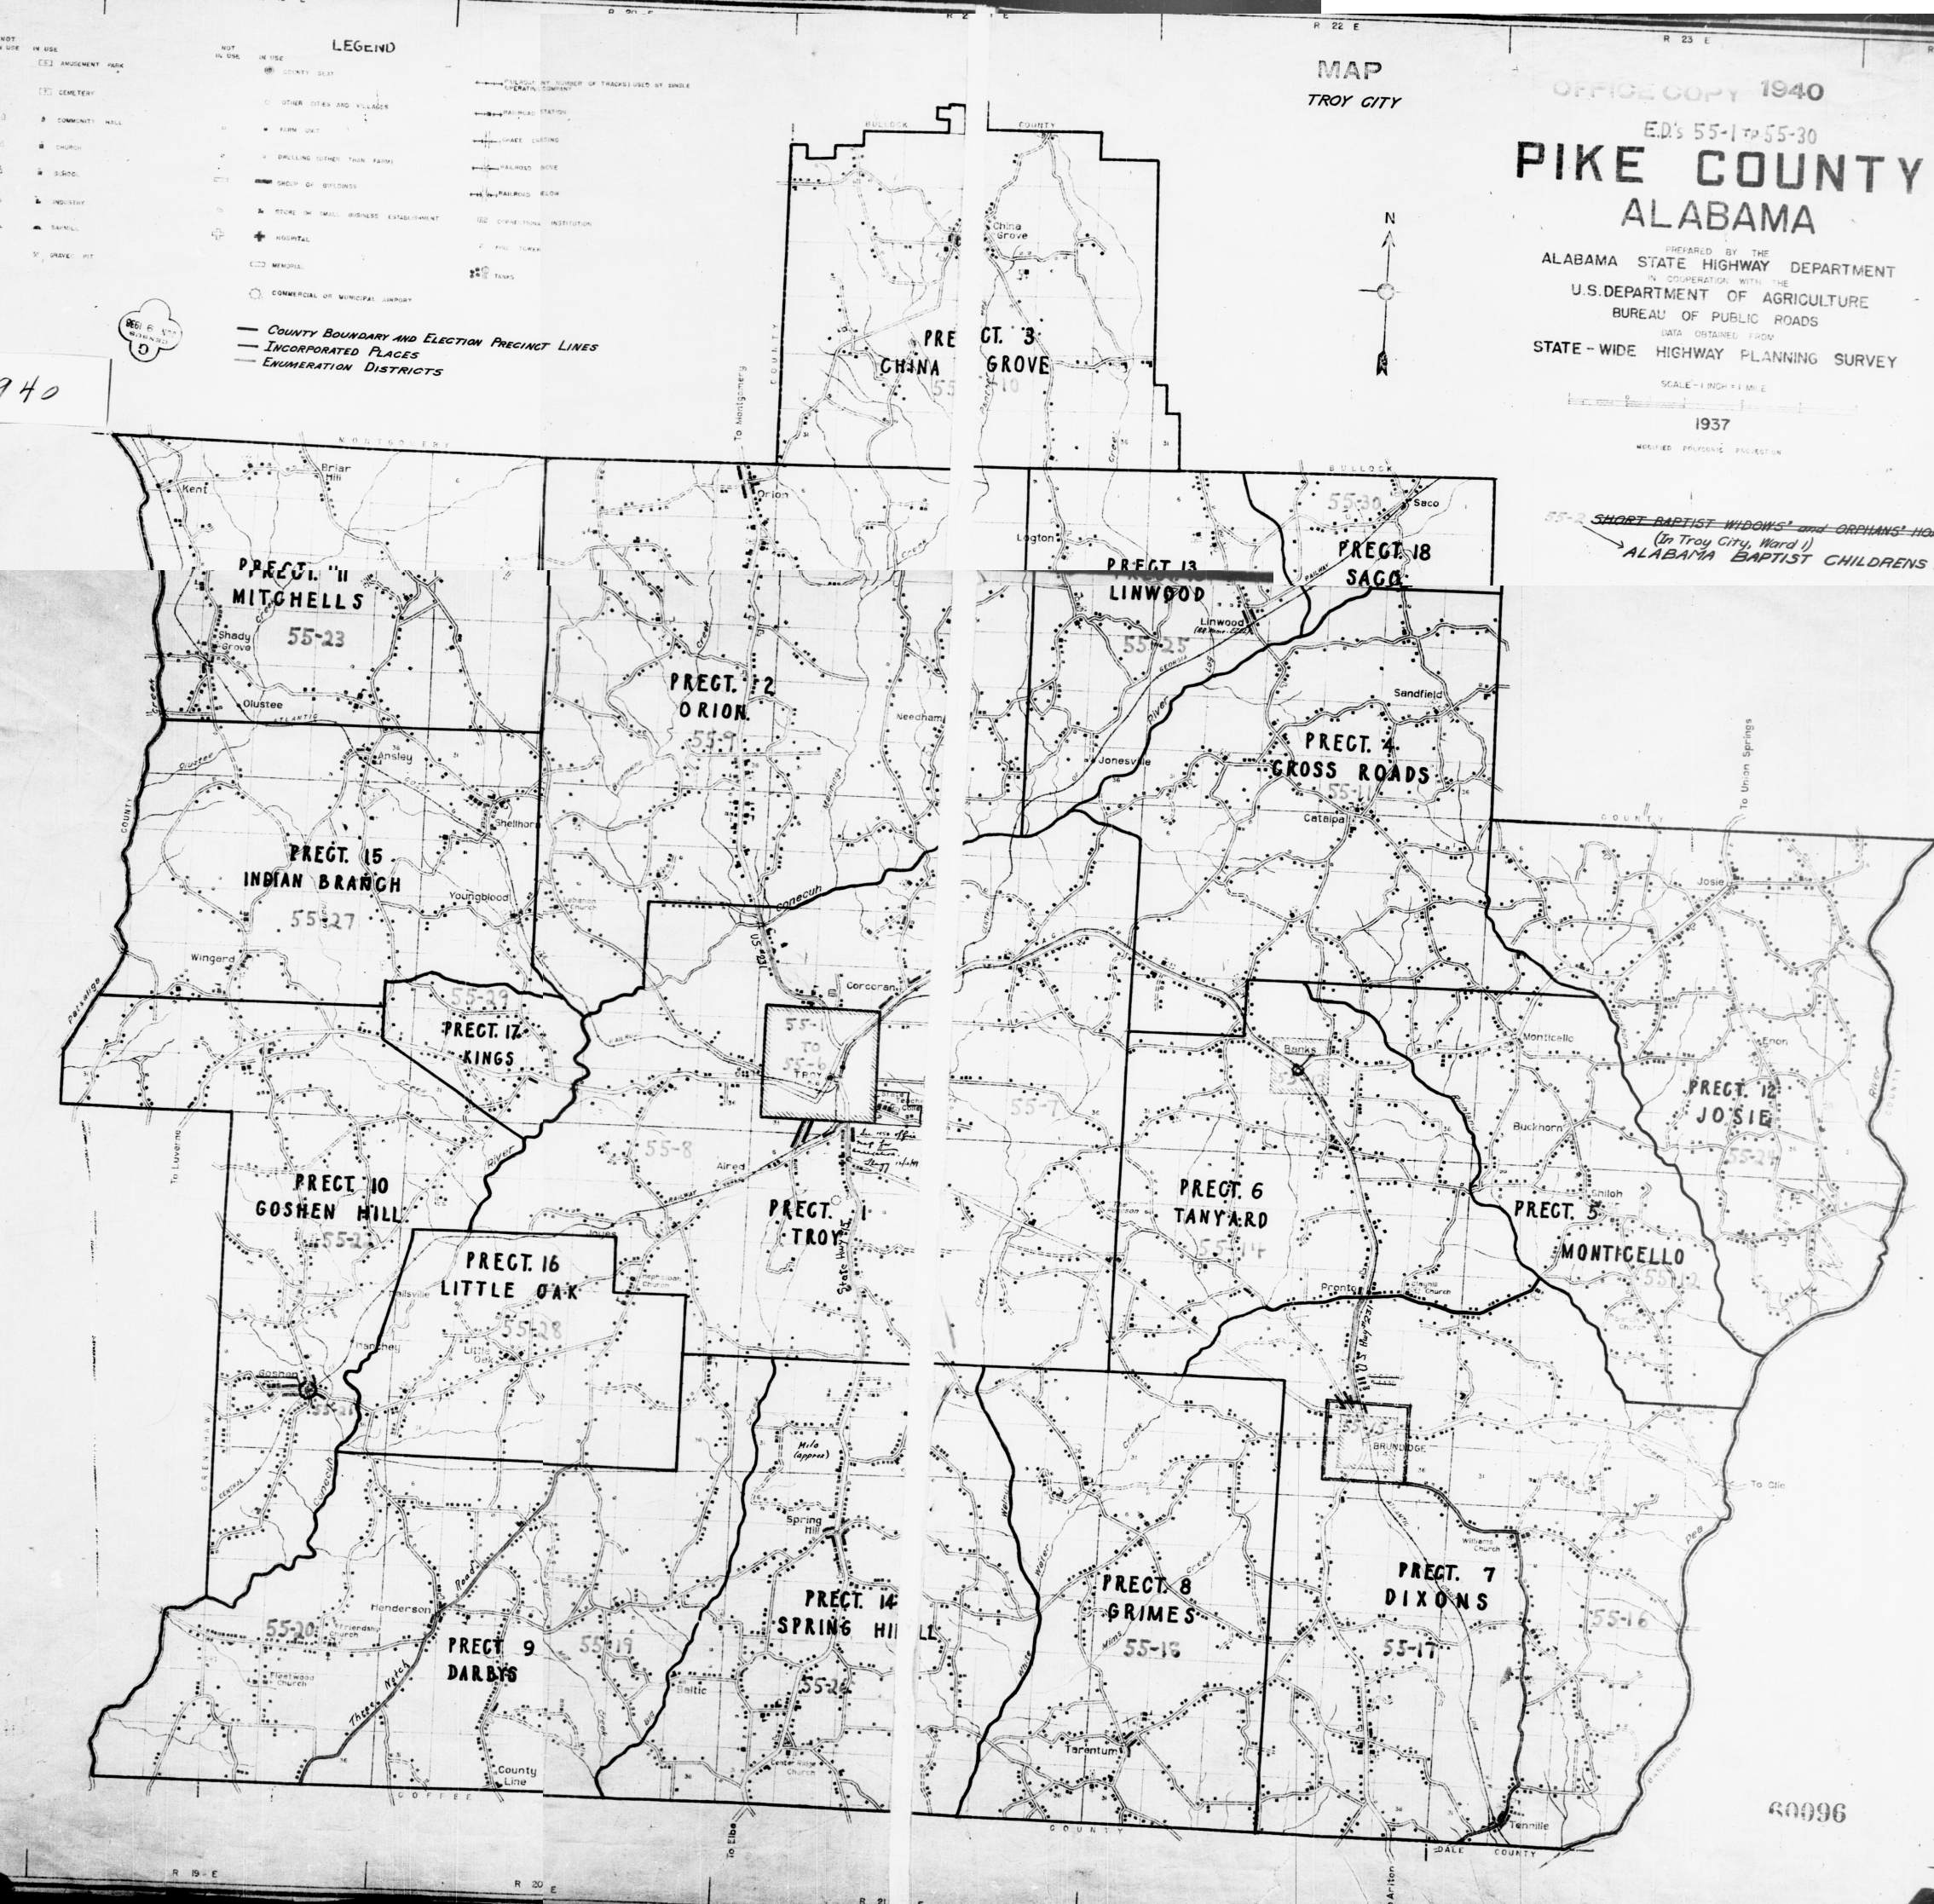 1940 Pike County Enumeration Districts Single Map